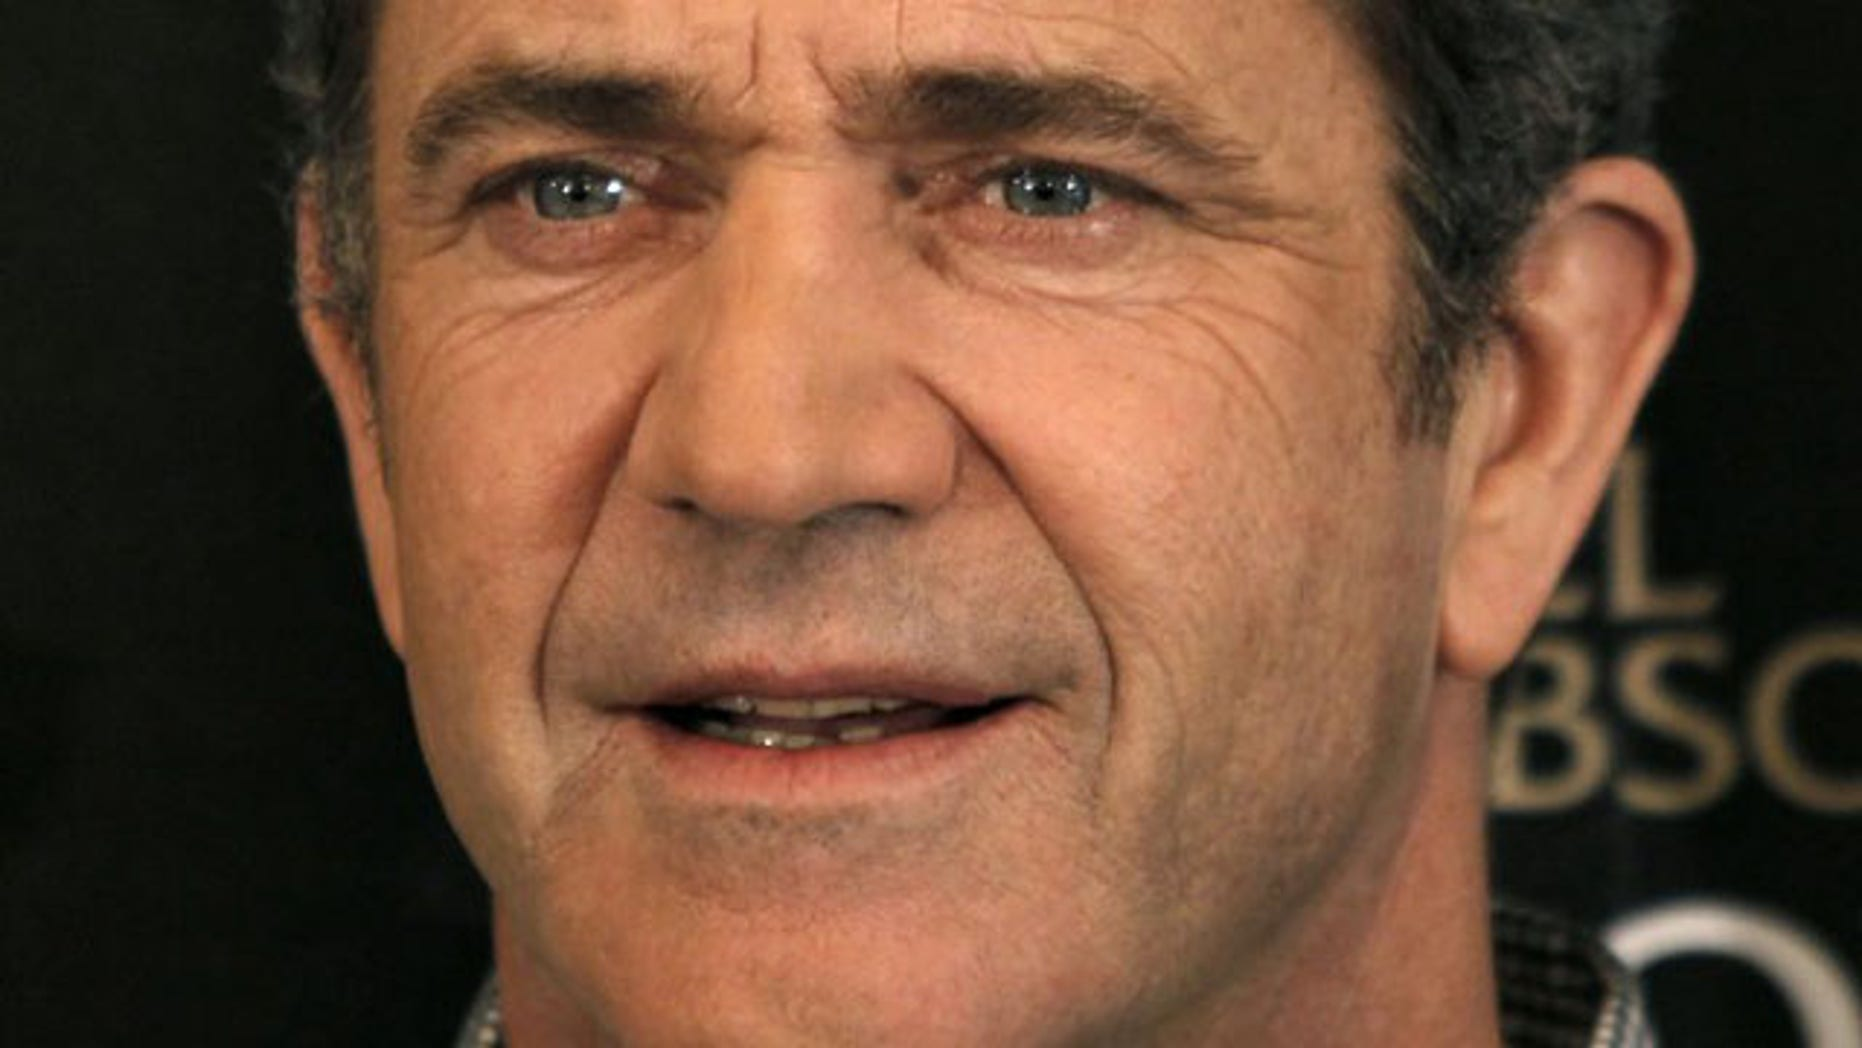 """Actor Mel Gibson poses during a photocall for the film """"Edge of Darkness"""" by director Martin Campbell in Paris, in this February 4, 2010 file photo (Reuters)."""